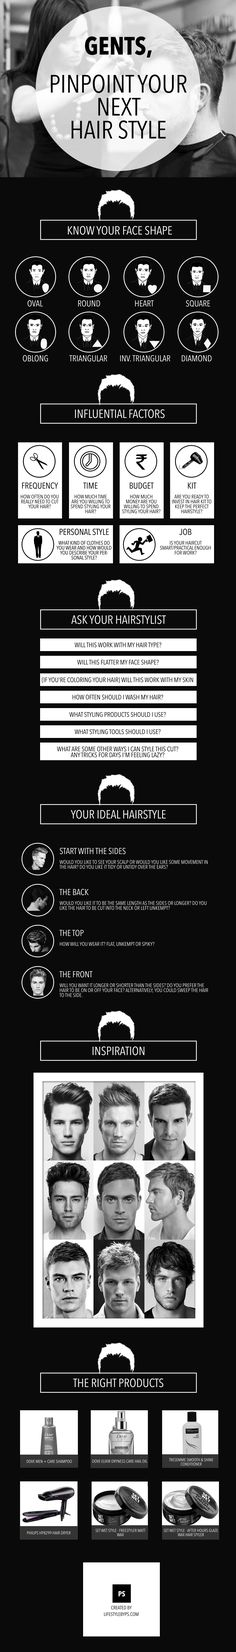 how to have best hairstyle